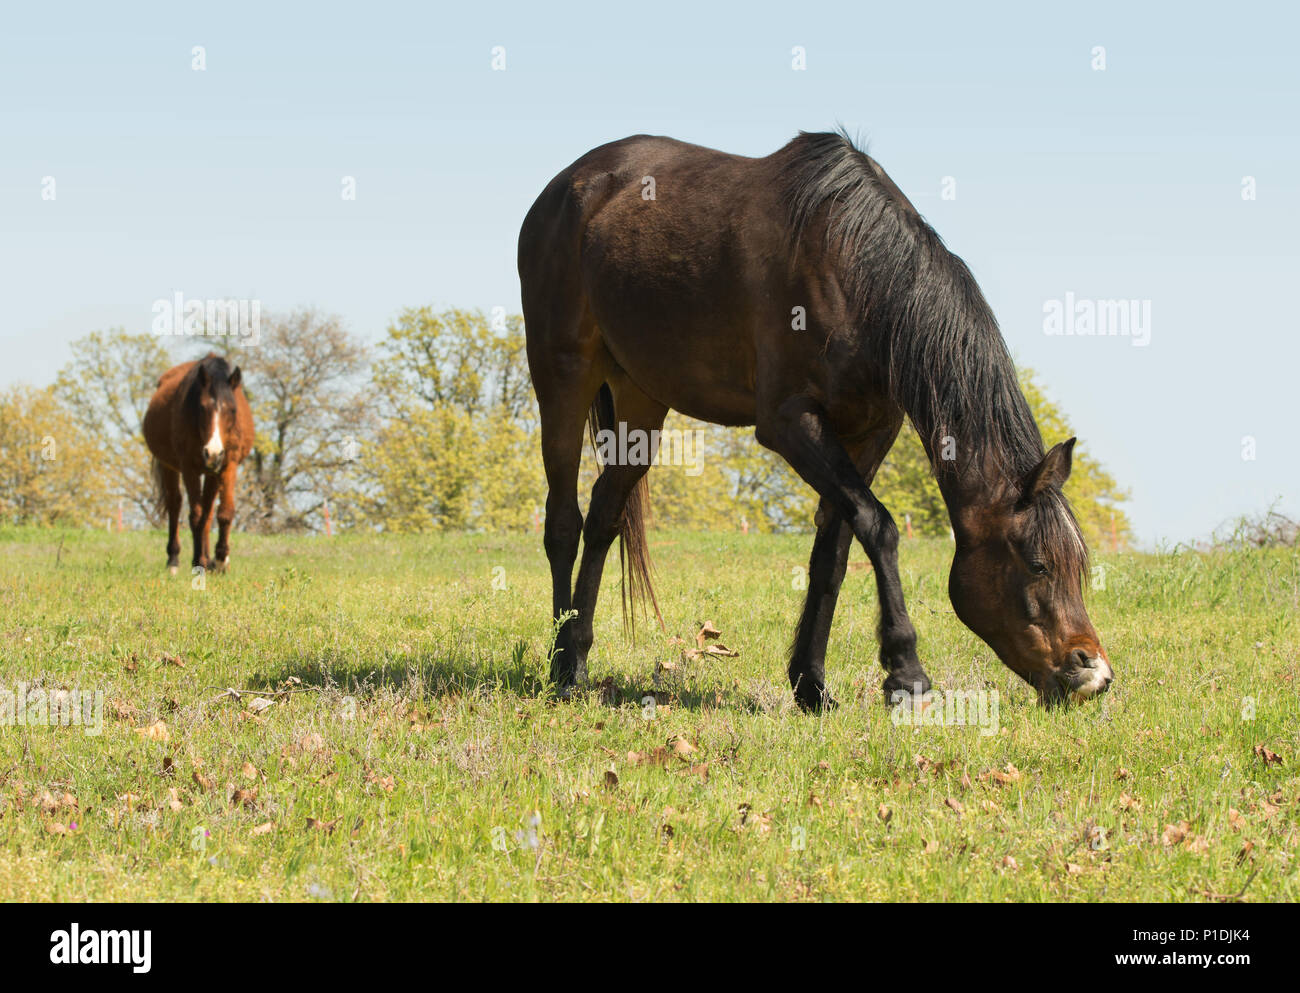 Dark bay horse grazing on a green spring pasture - Stock Image